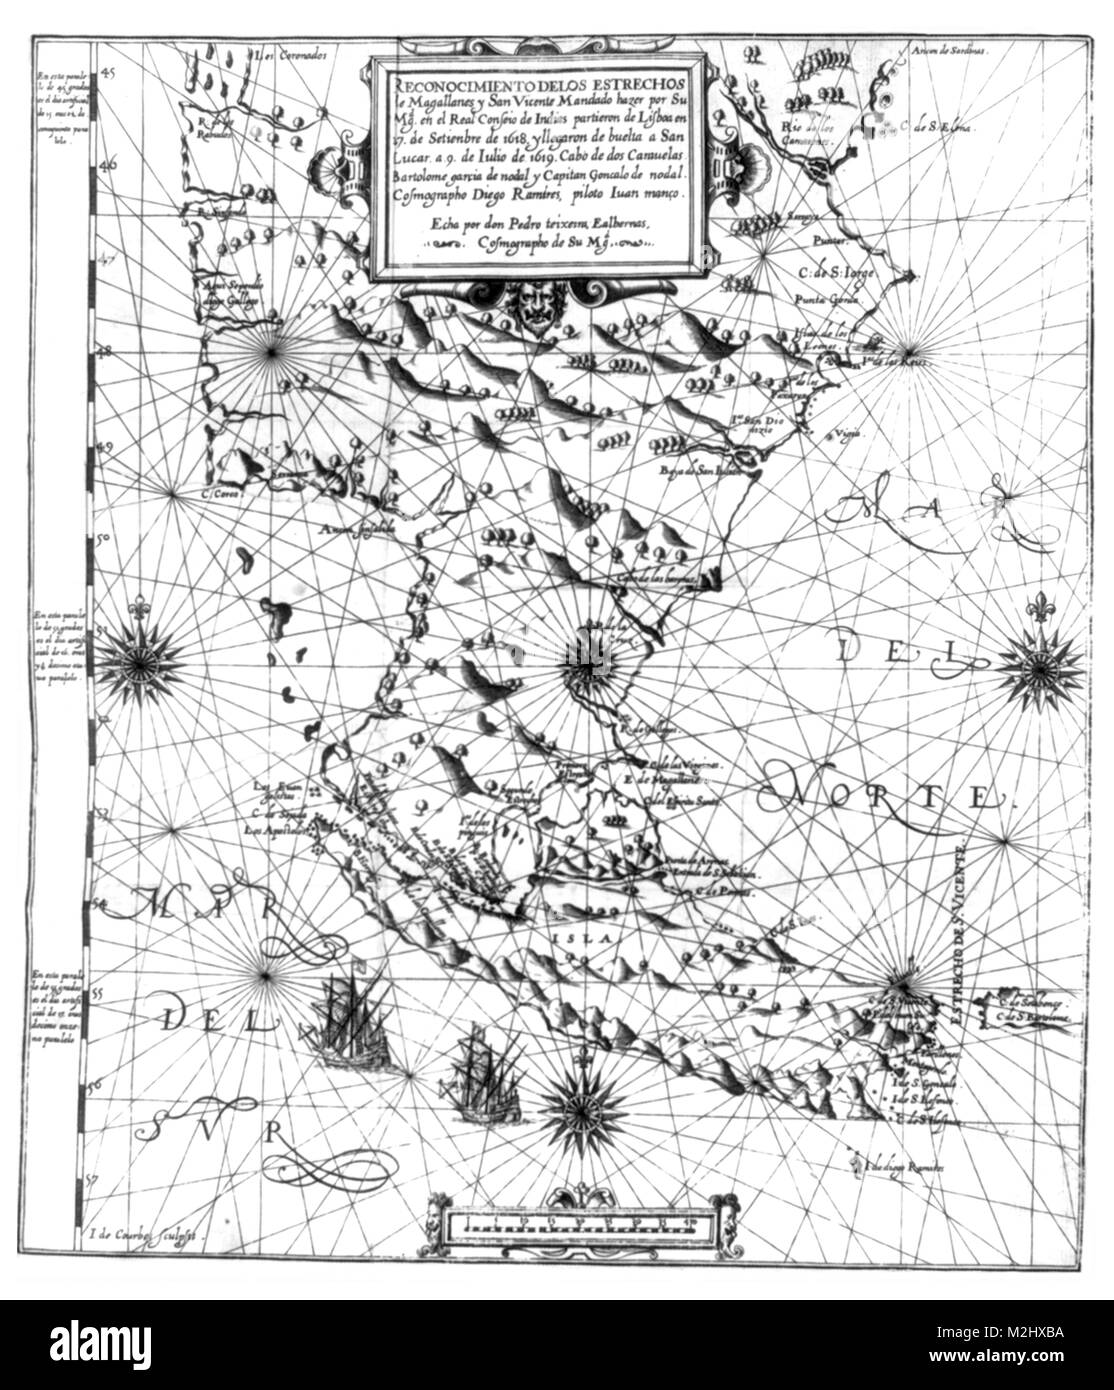 Map of the Strait of Magellan, 1621 - Stock Image